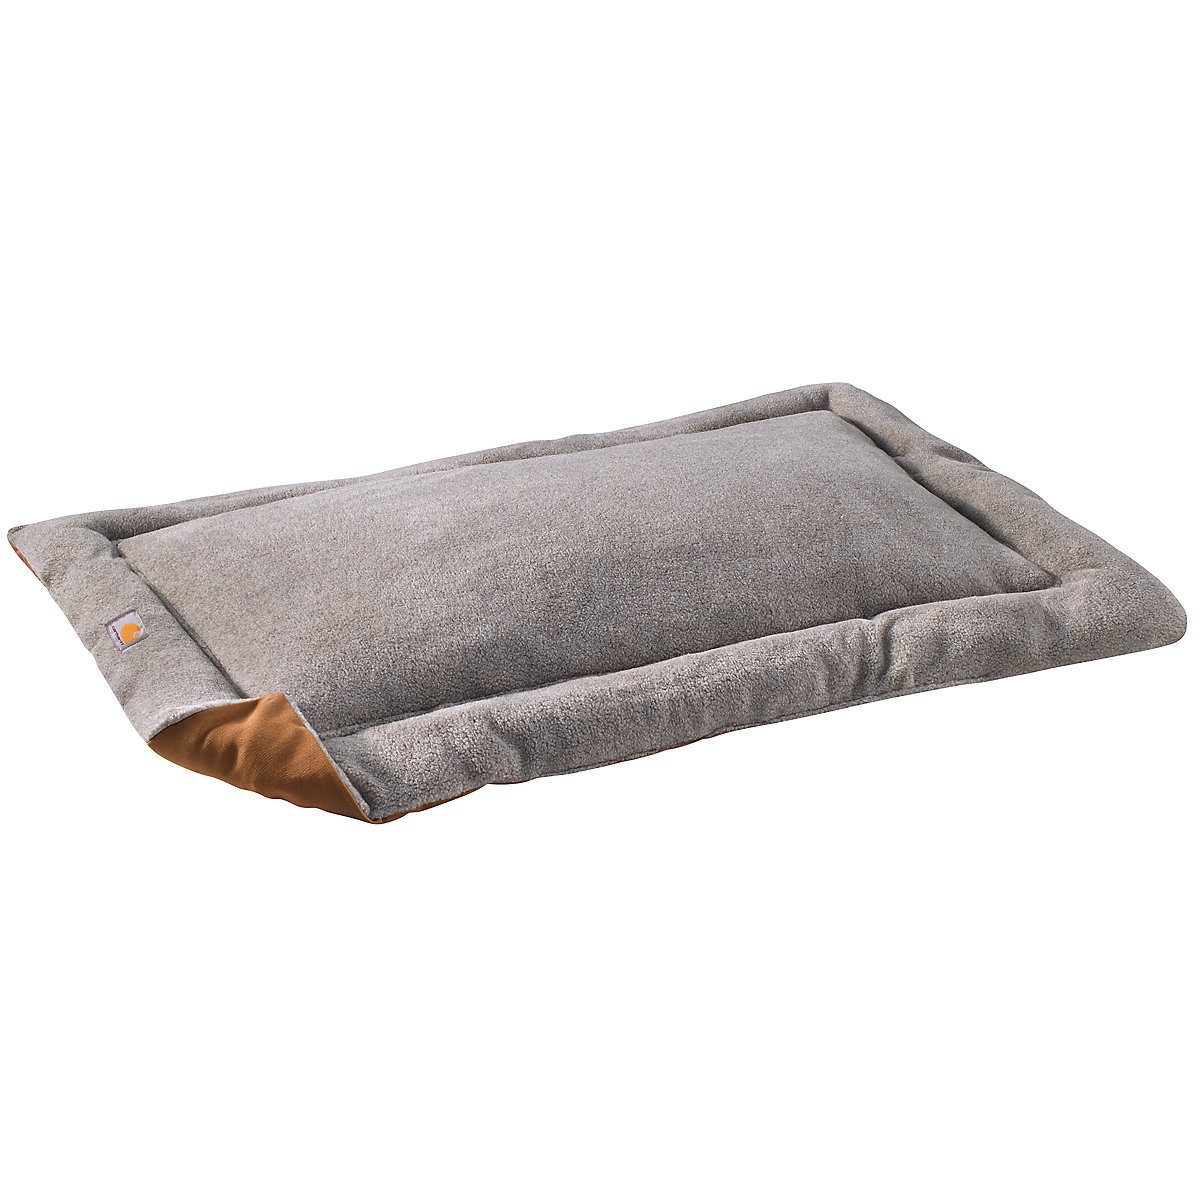 dog beds when square bed you choose carhartt